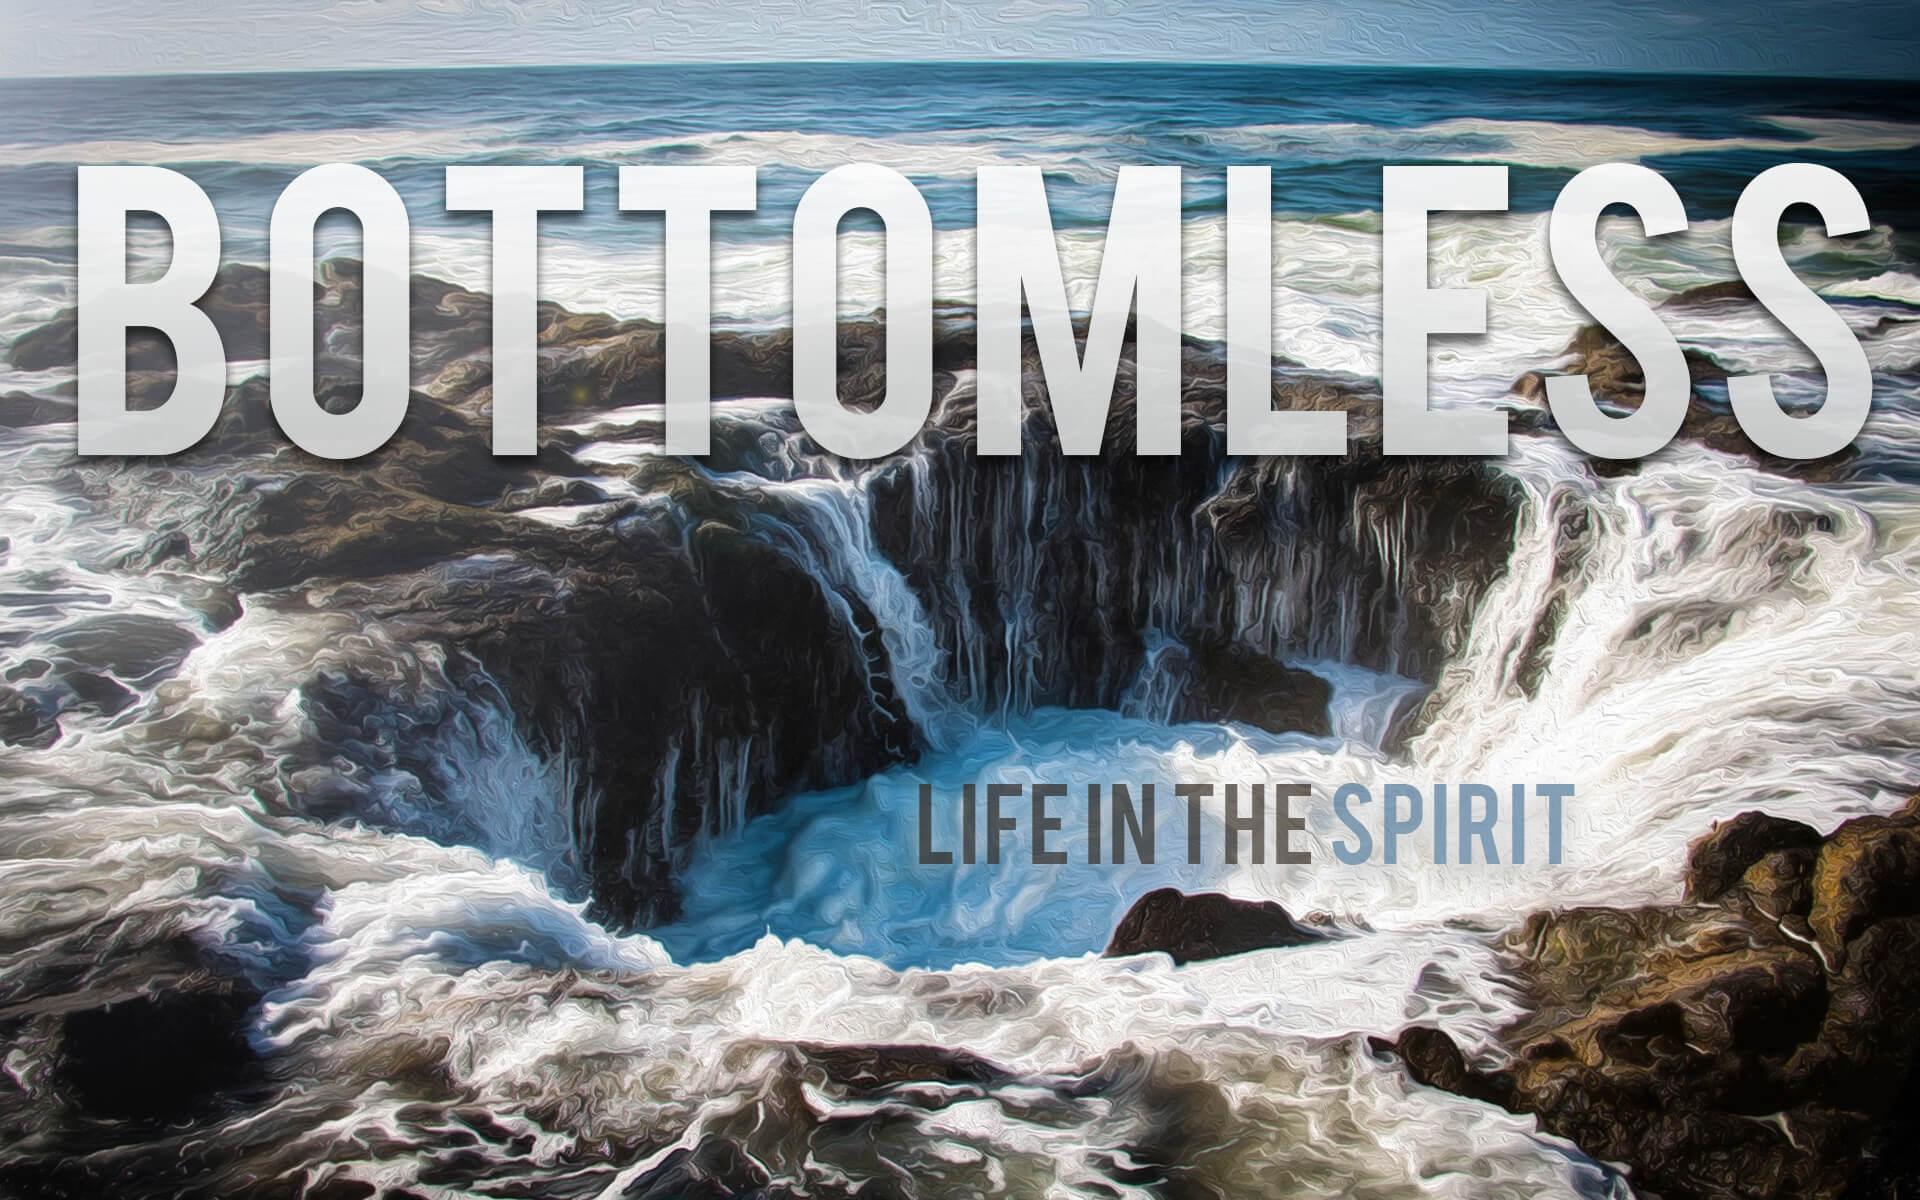 Bottomless: Life in the Spirit